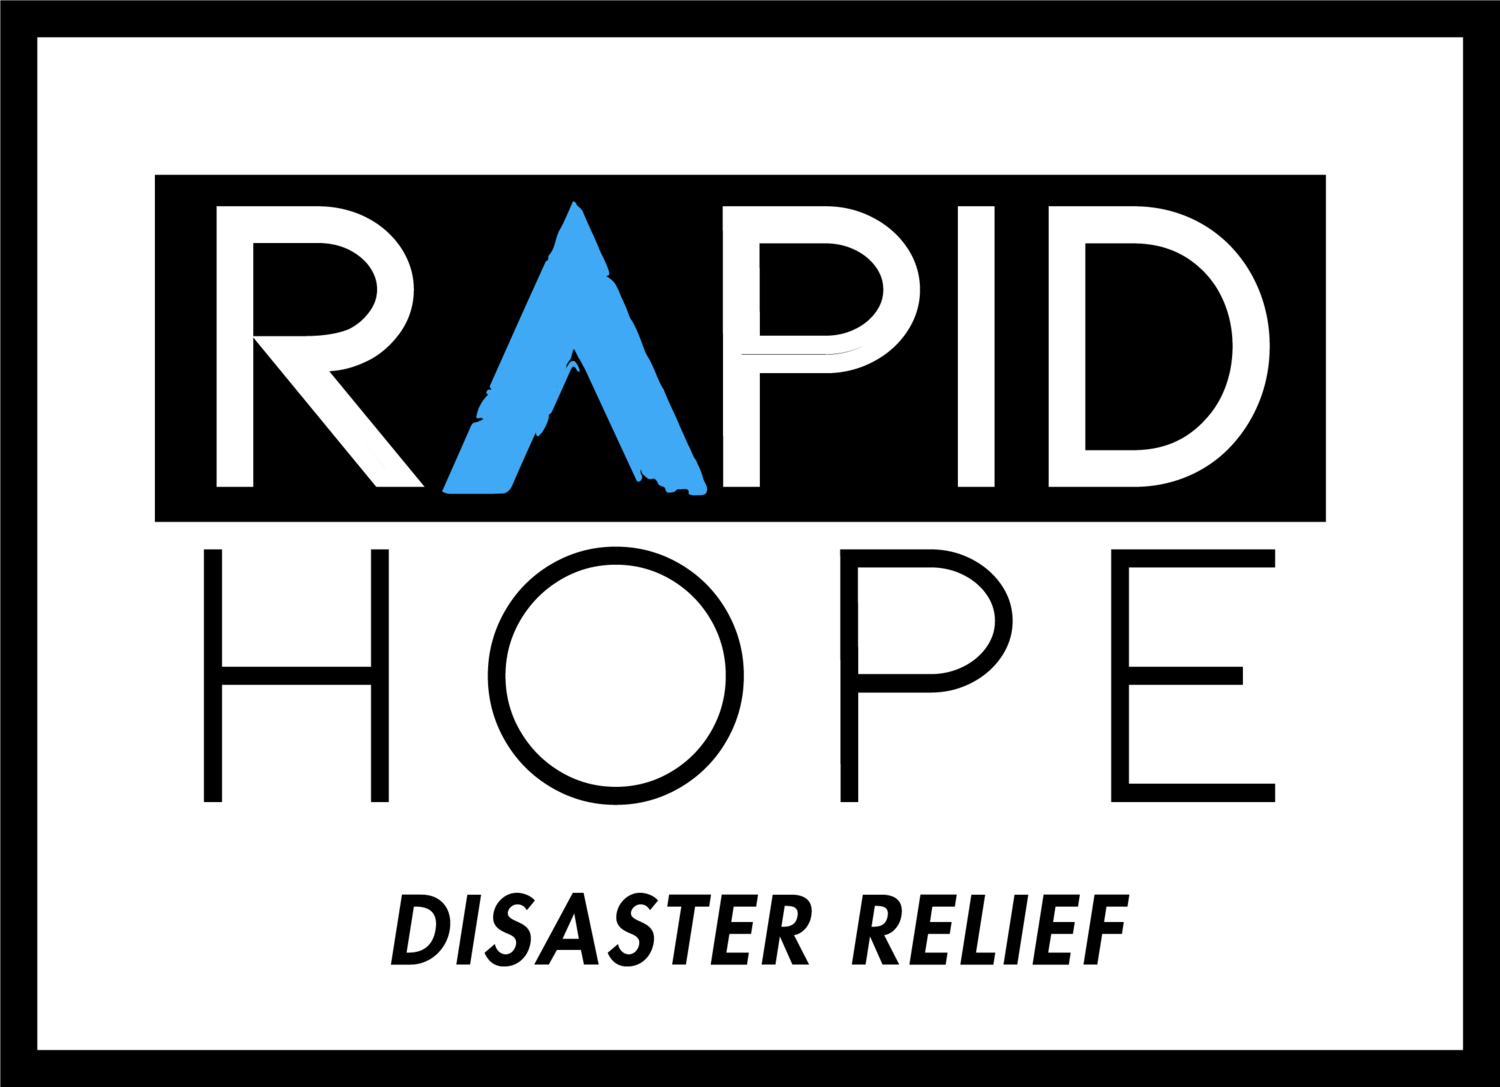 rapidhope.org